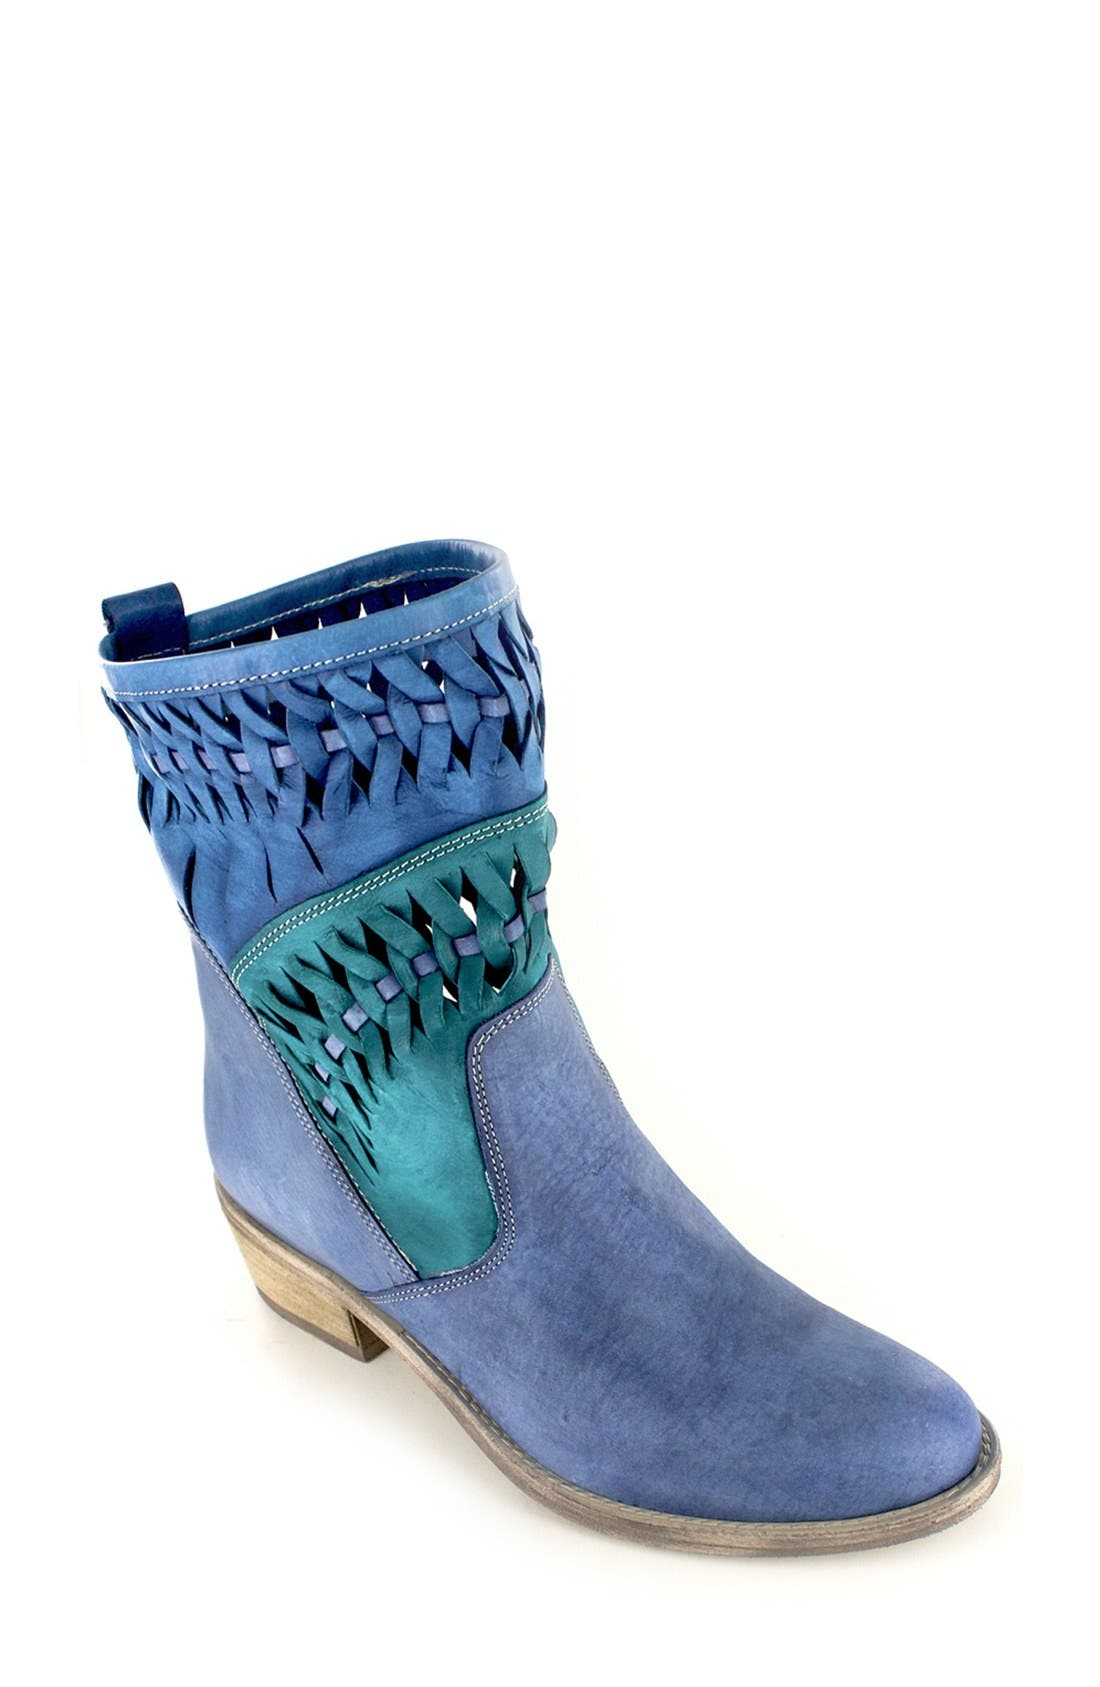 Alternate Image 1 Selected - Summit 'Christy' Western Boot (Women)